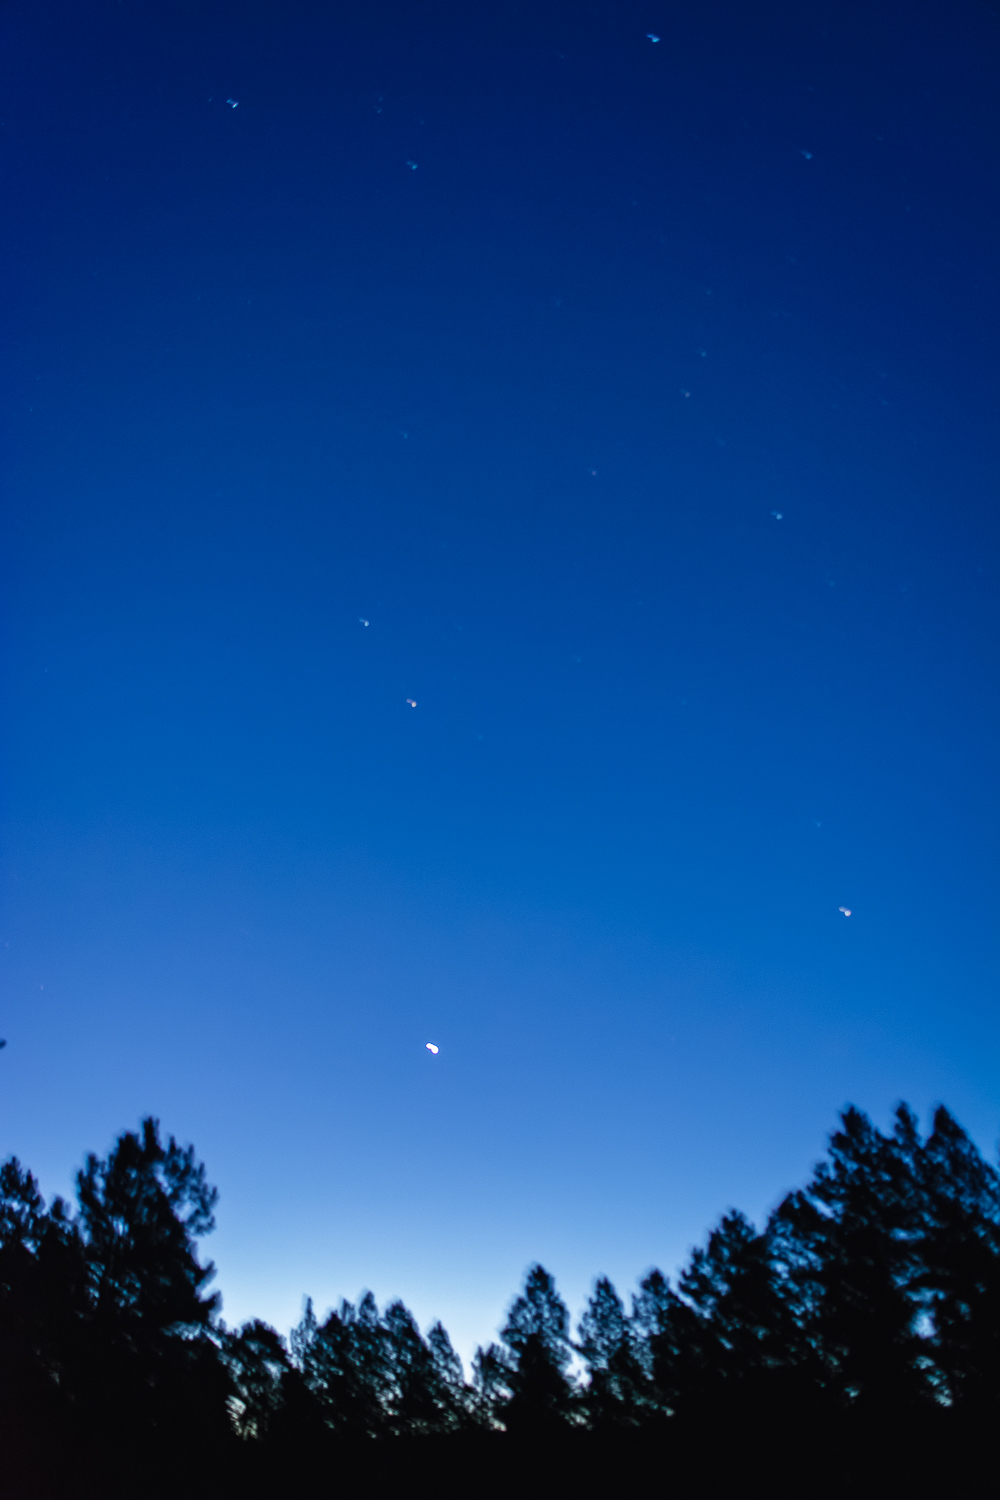 Astrophotography, New Mexico, Rancho Del Chaparral Girl Scout Camp, Albuquerque Photographer, Albuquerque Wedding Photographer, Santa Fe Girl Scout, Rio Rancho Girl Scouts, Girl Scouts of New Mexico Trails